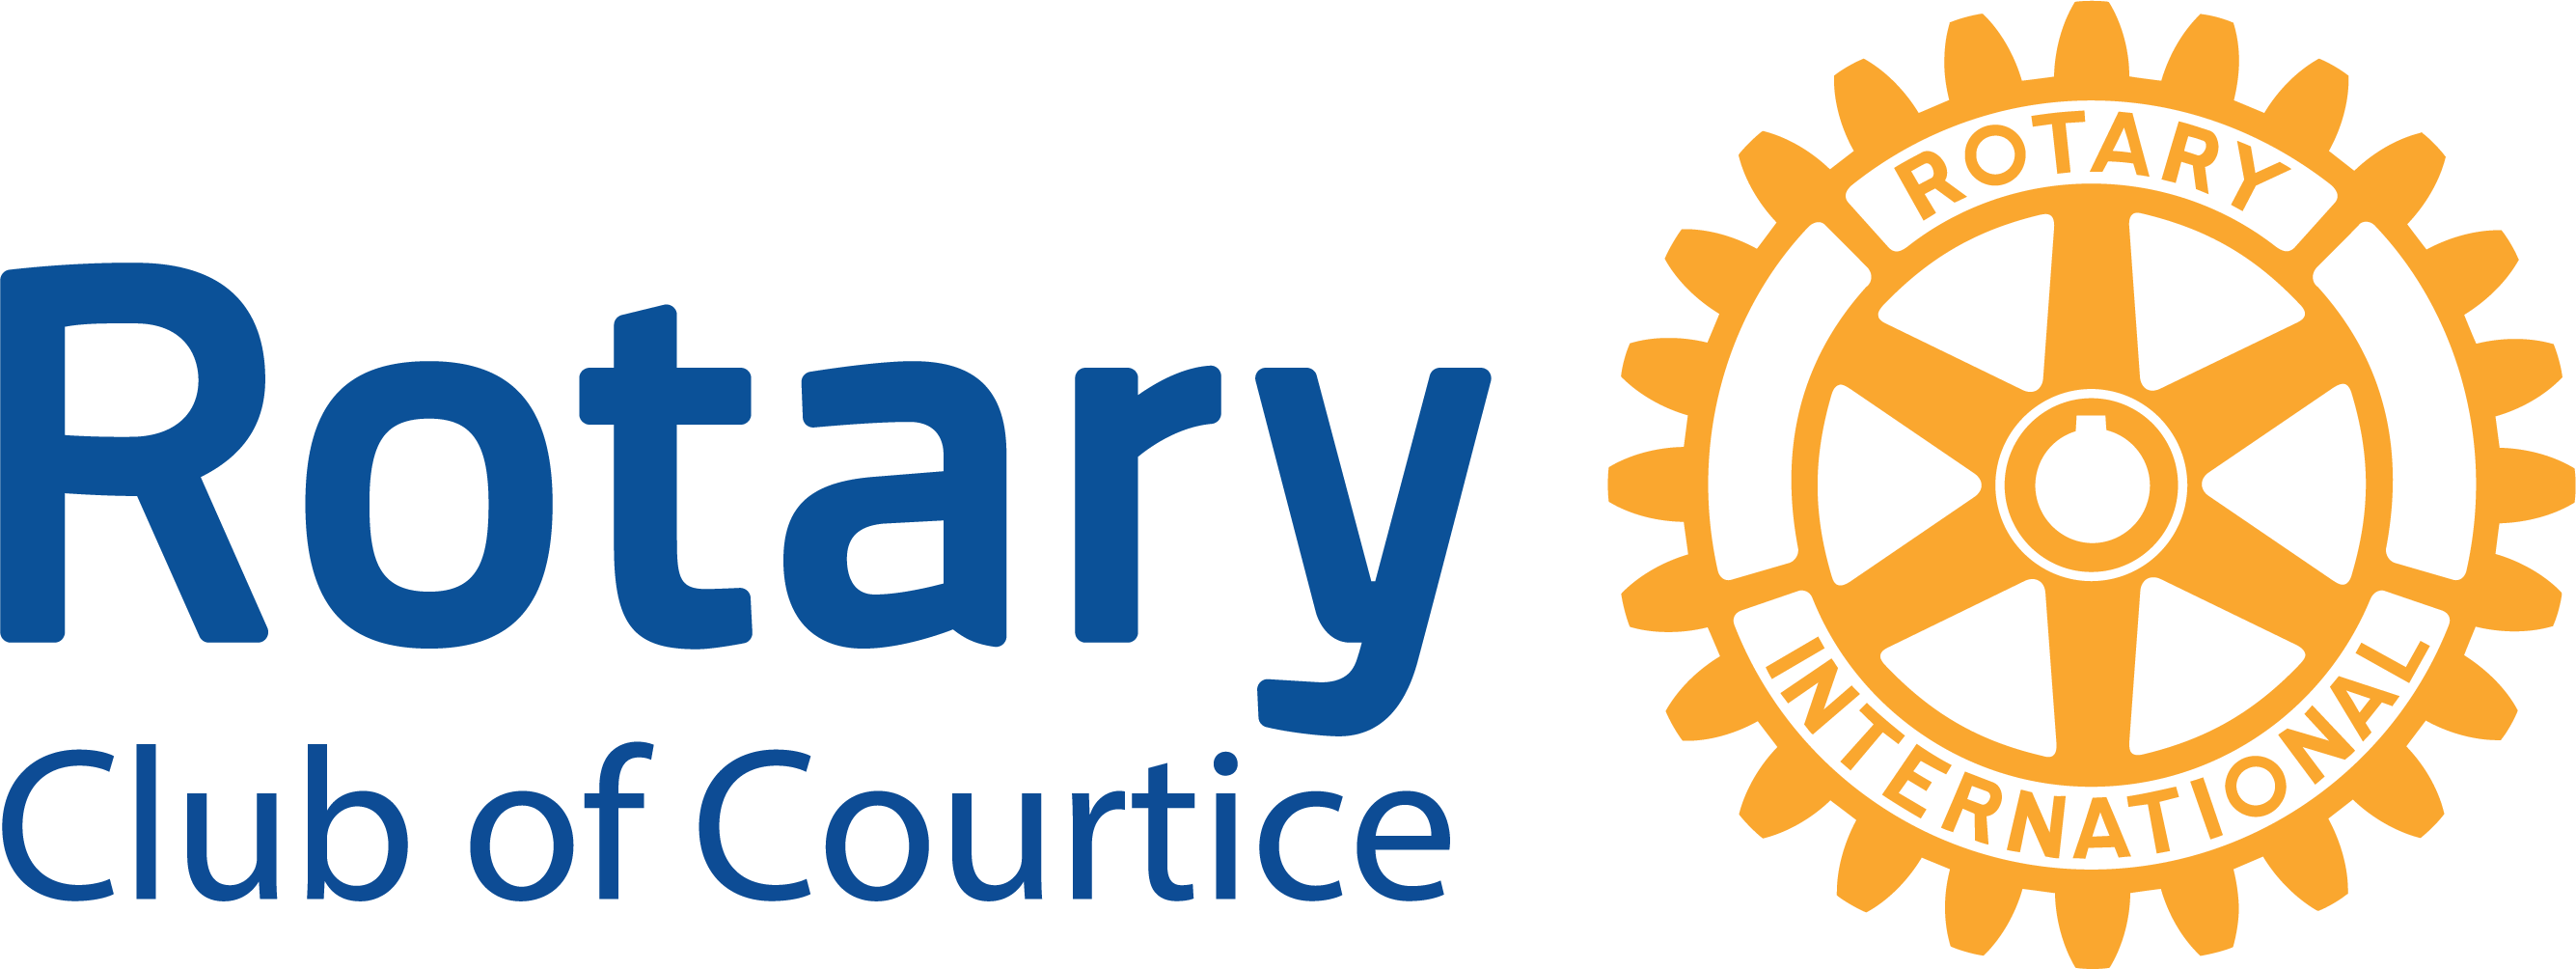 rotary club of courtice